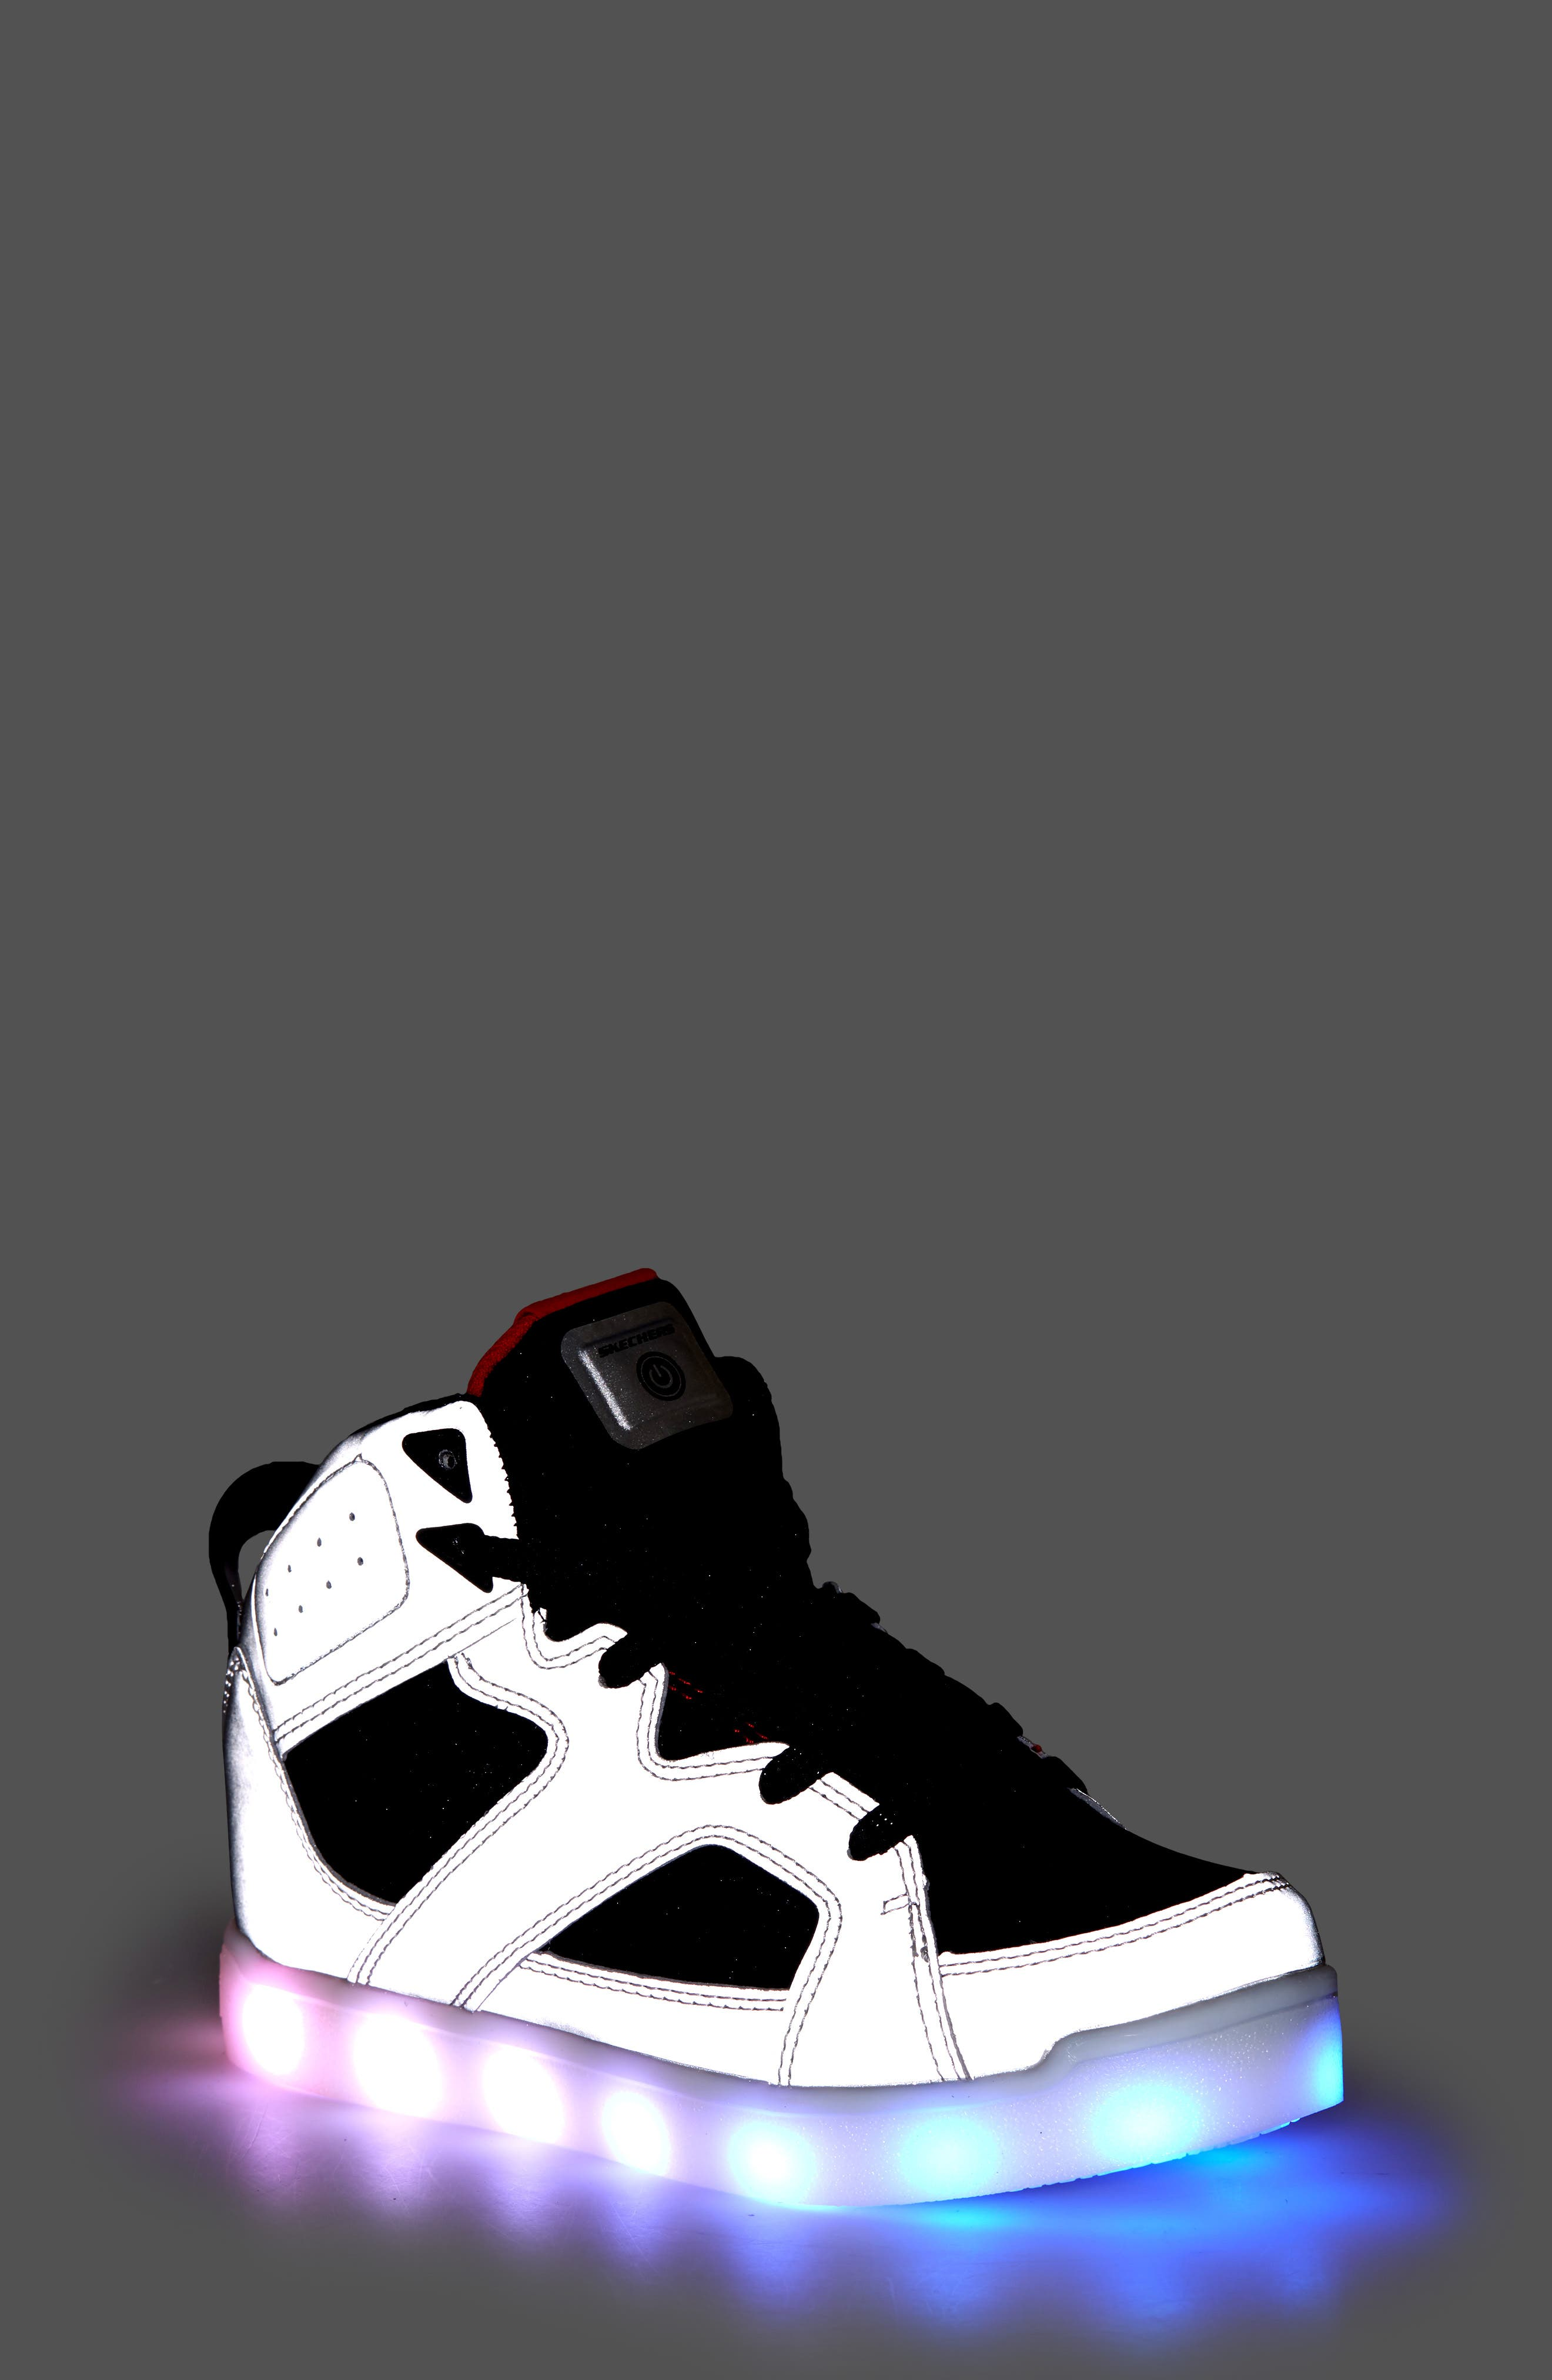 Energy Lights Pro Show Stopper High Top Sneaker,                             Alternate thumbnail 7, color,                             040